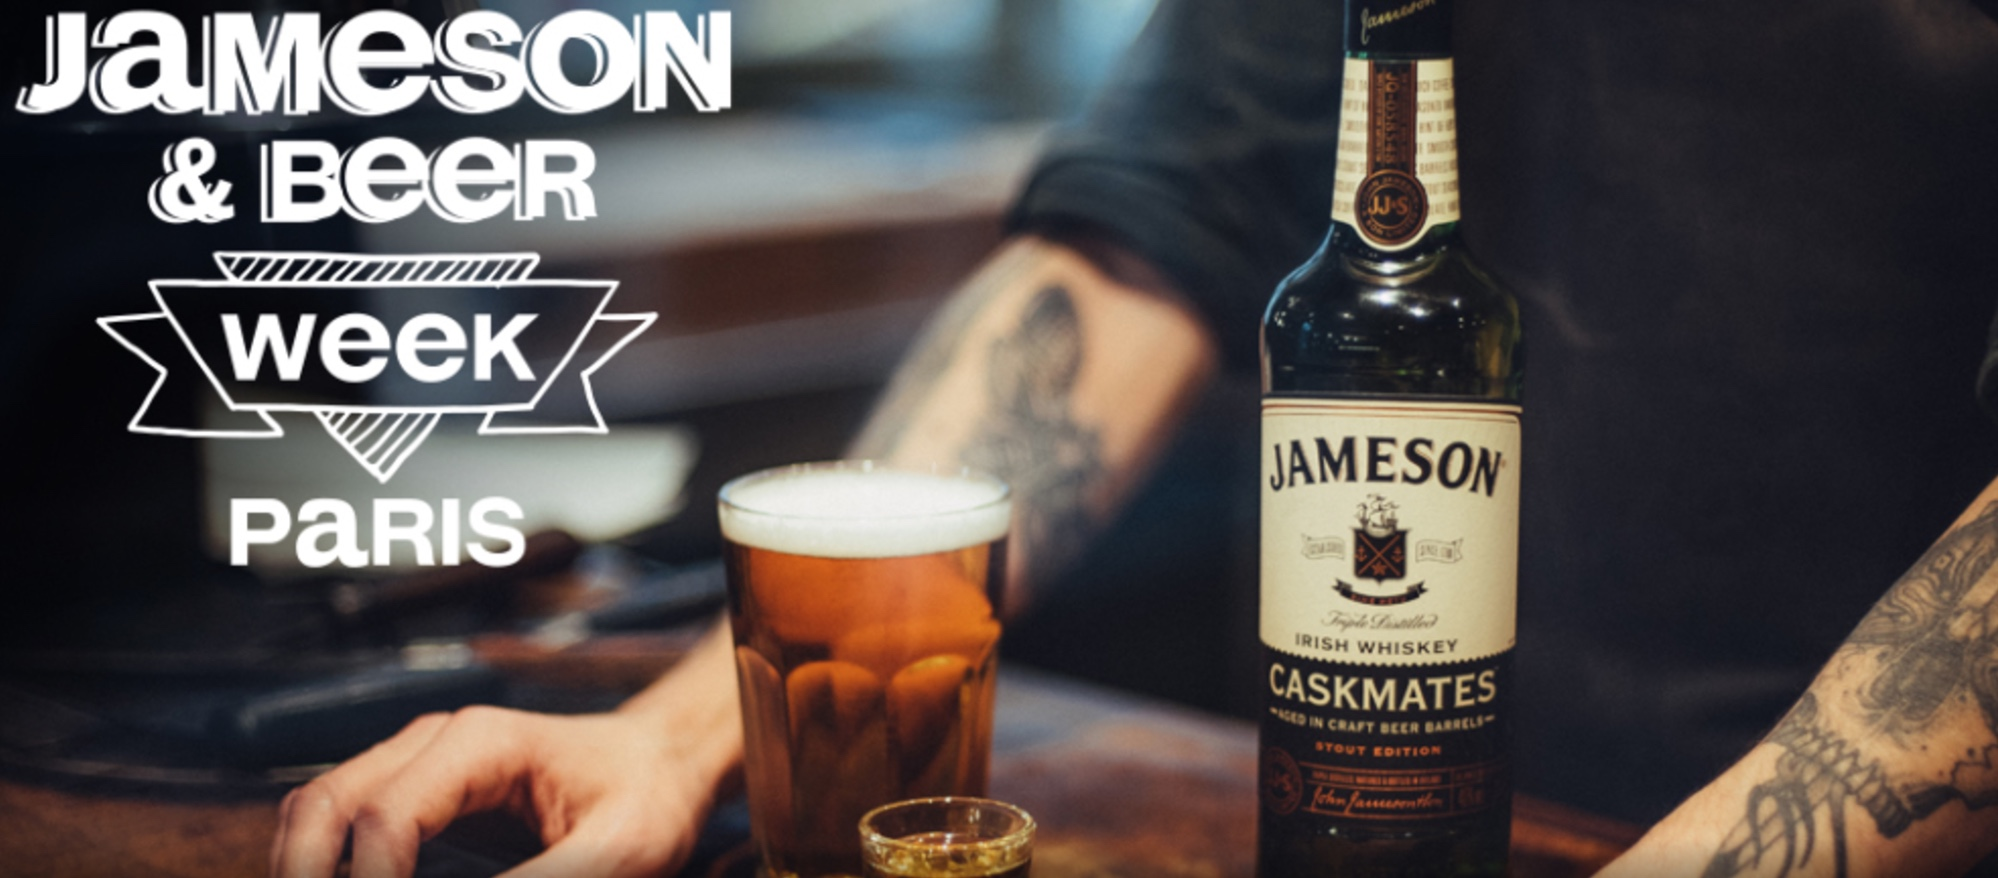 jameson beer & whiskey